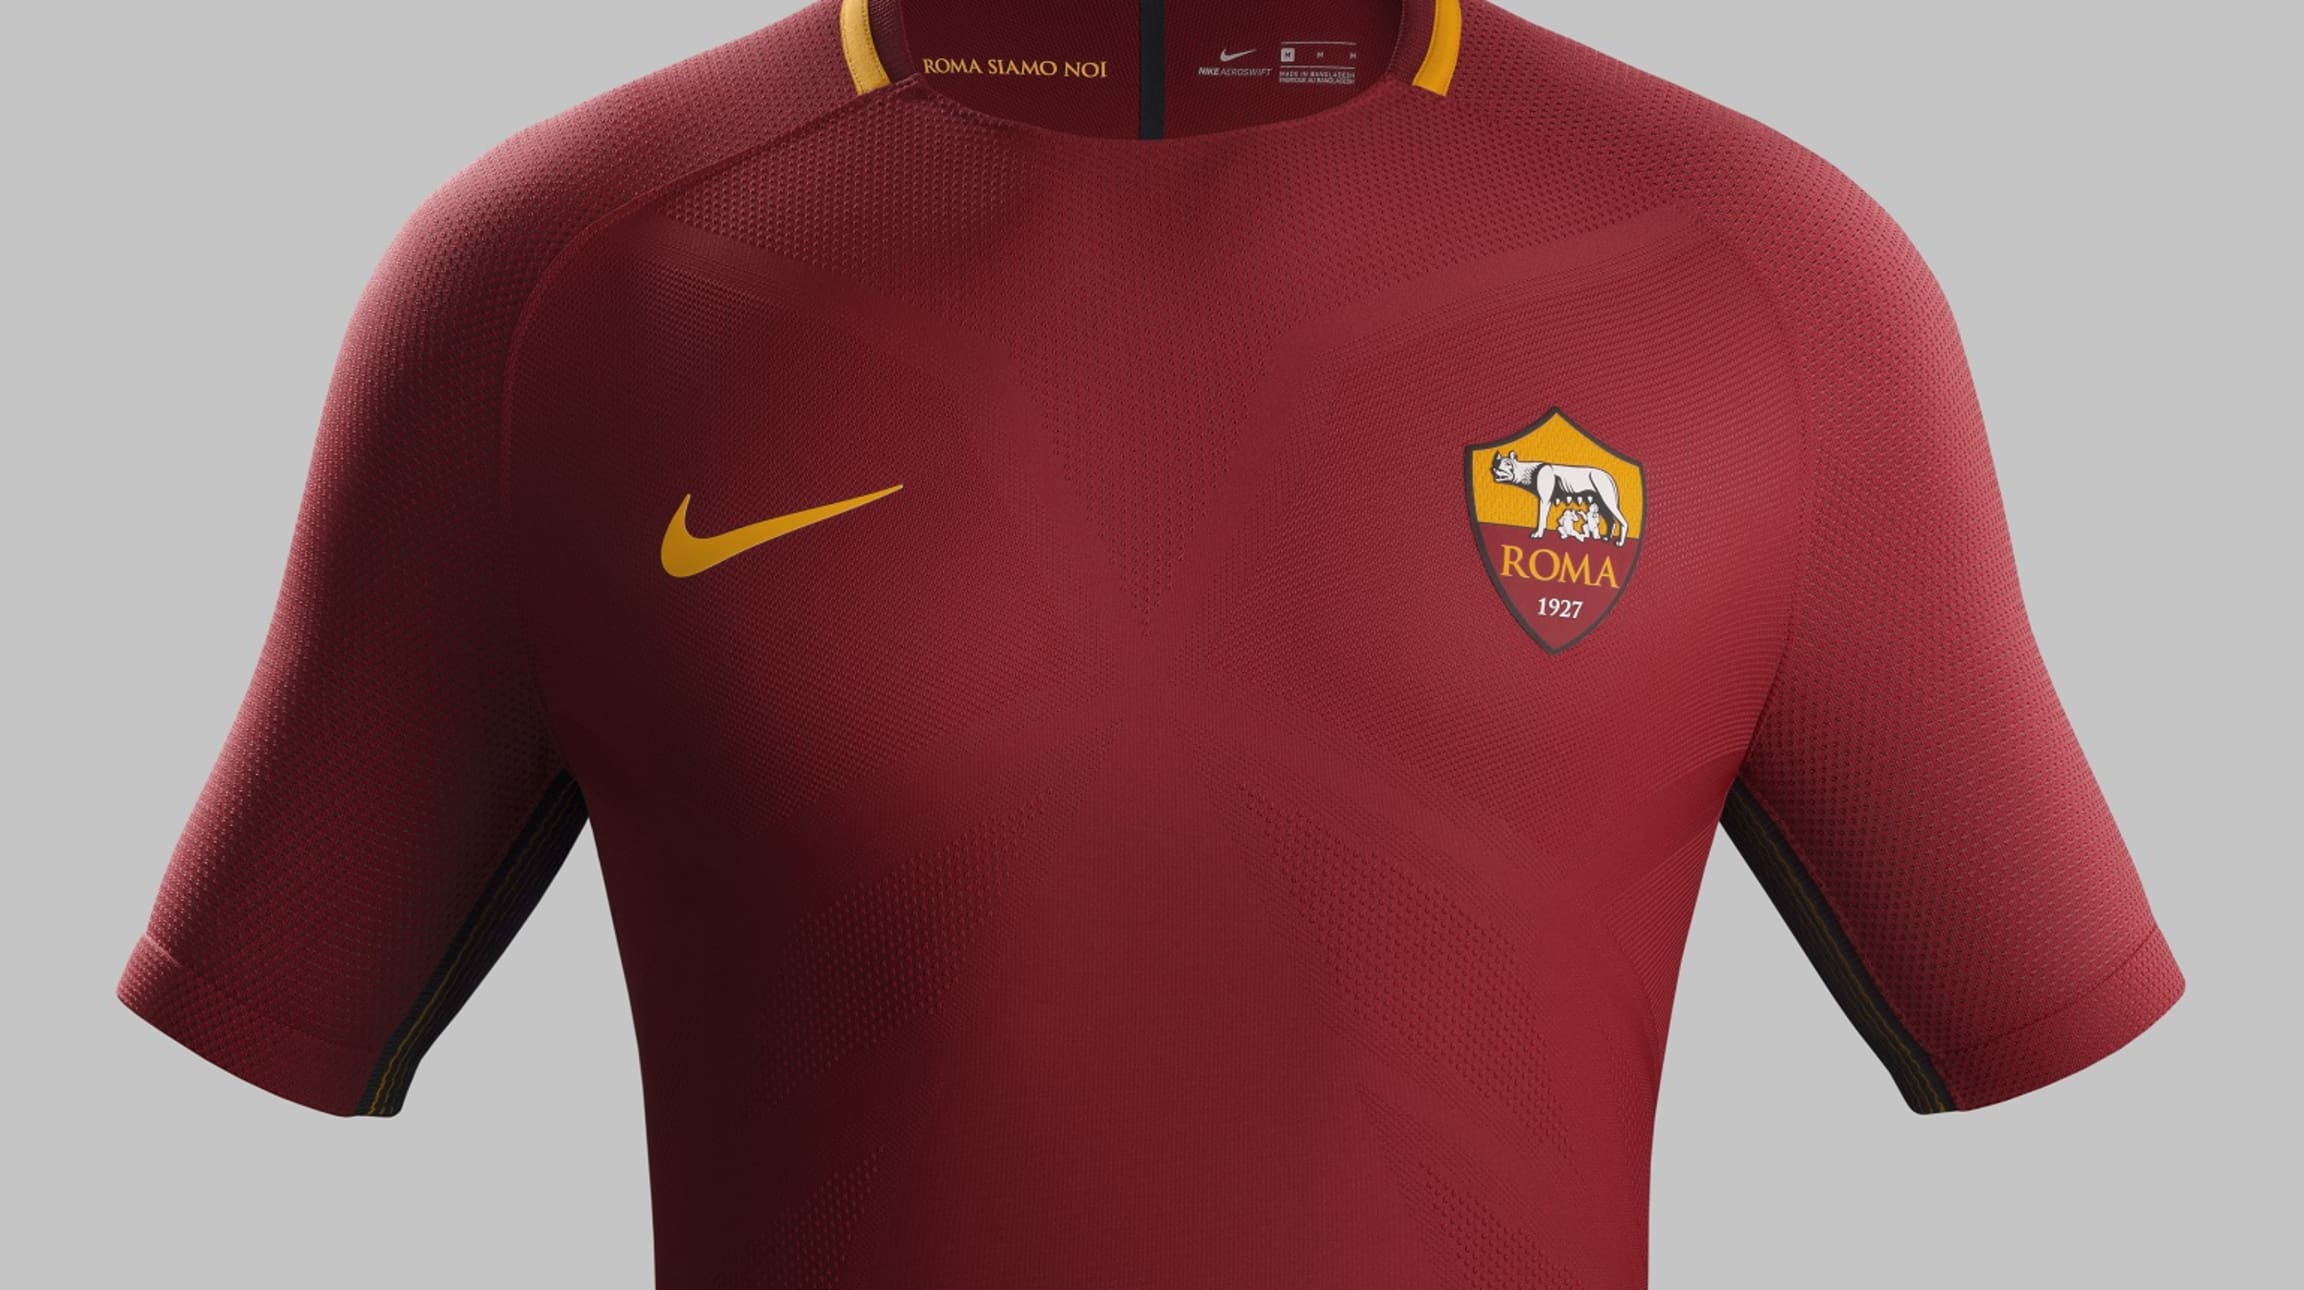 089e43b1c Buy AS Roma s new Nike home kit for the 2017-18 season now